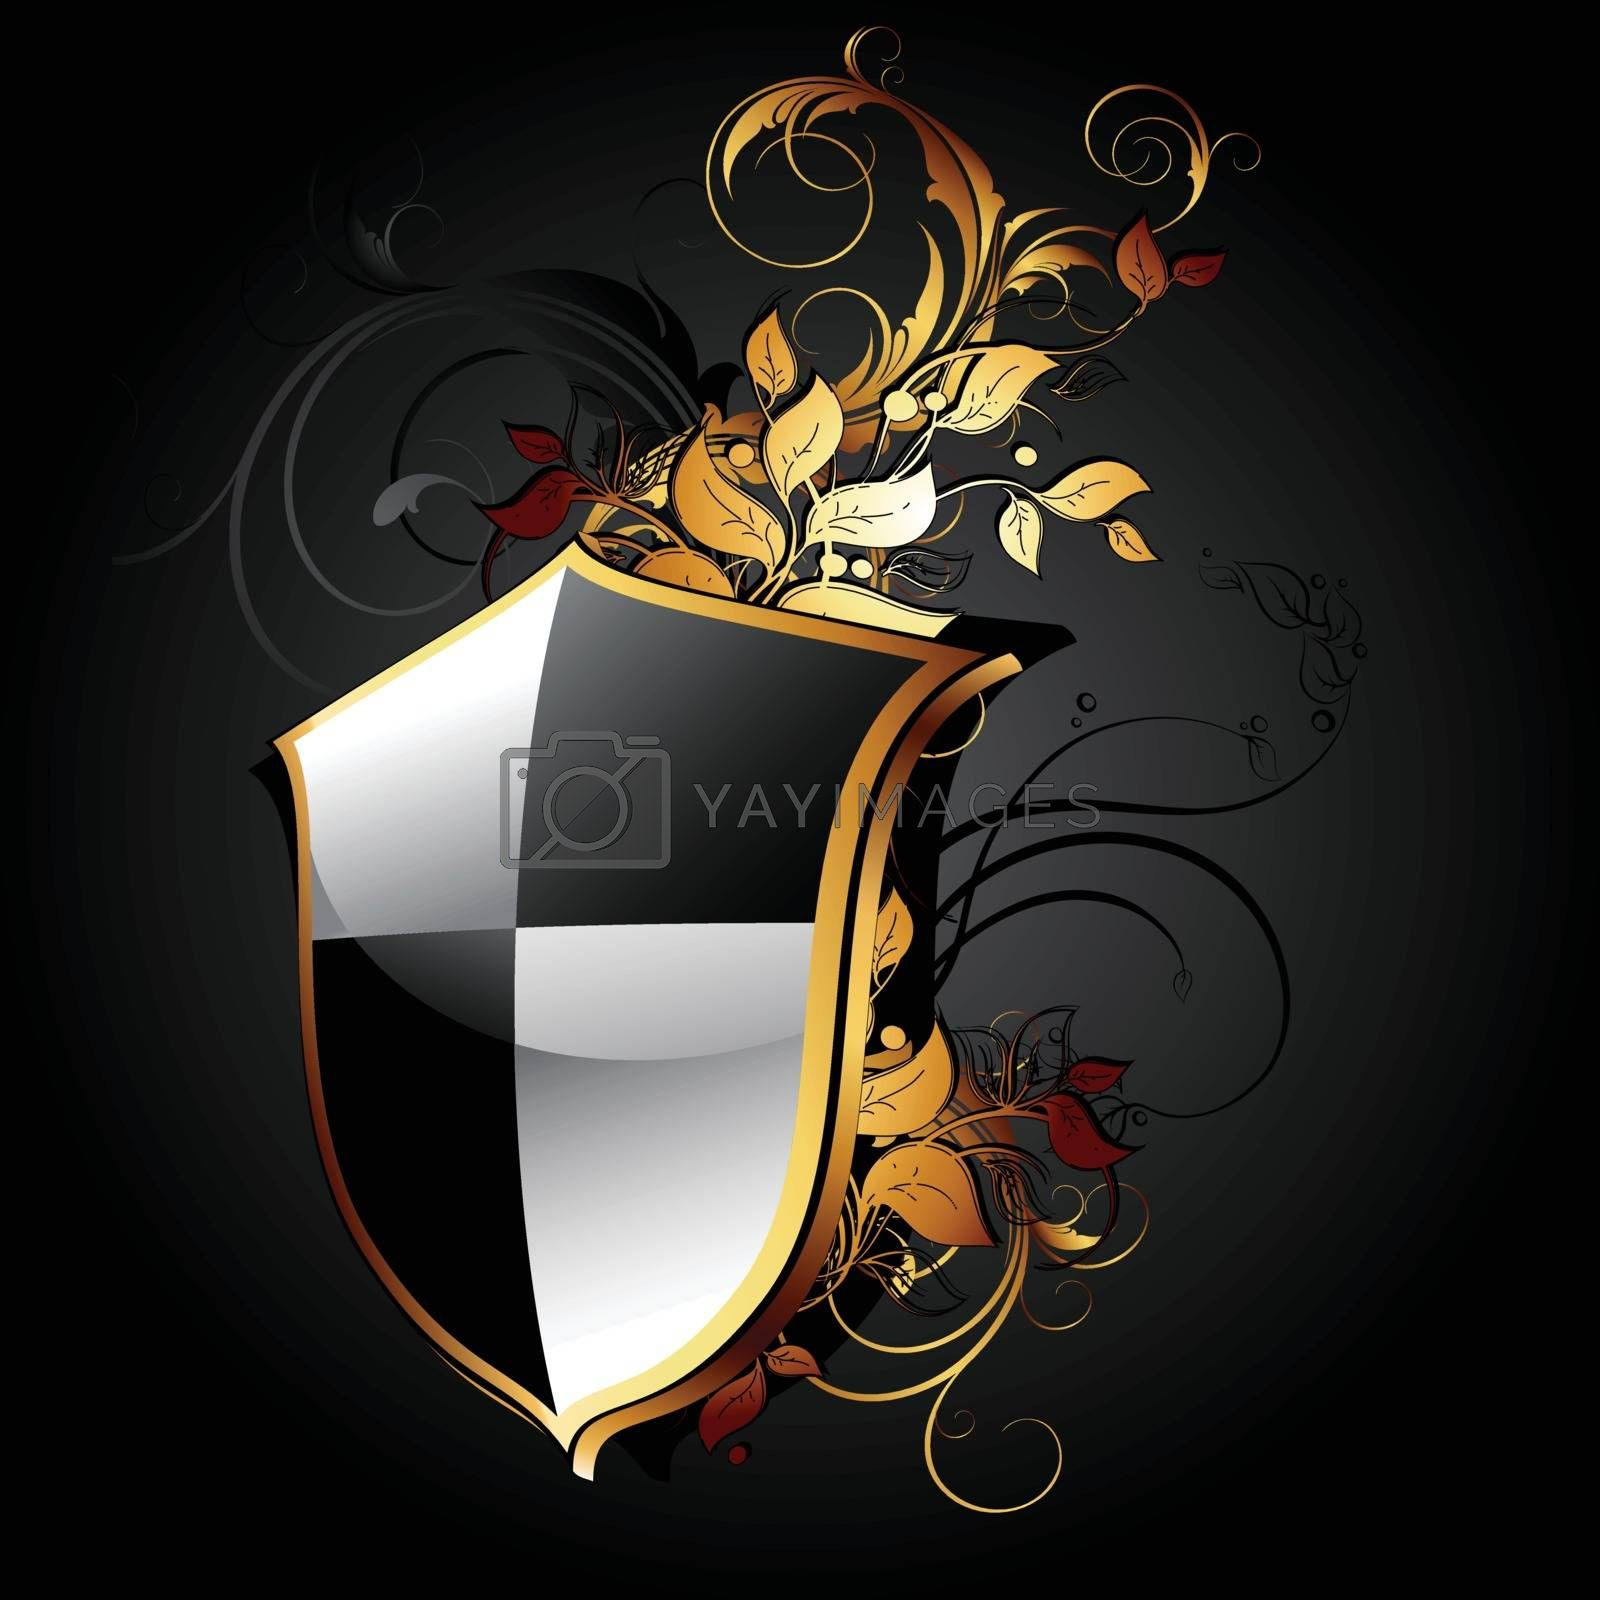 web icon shield with floral elements